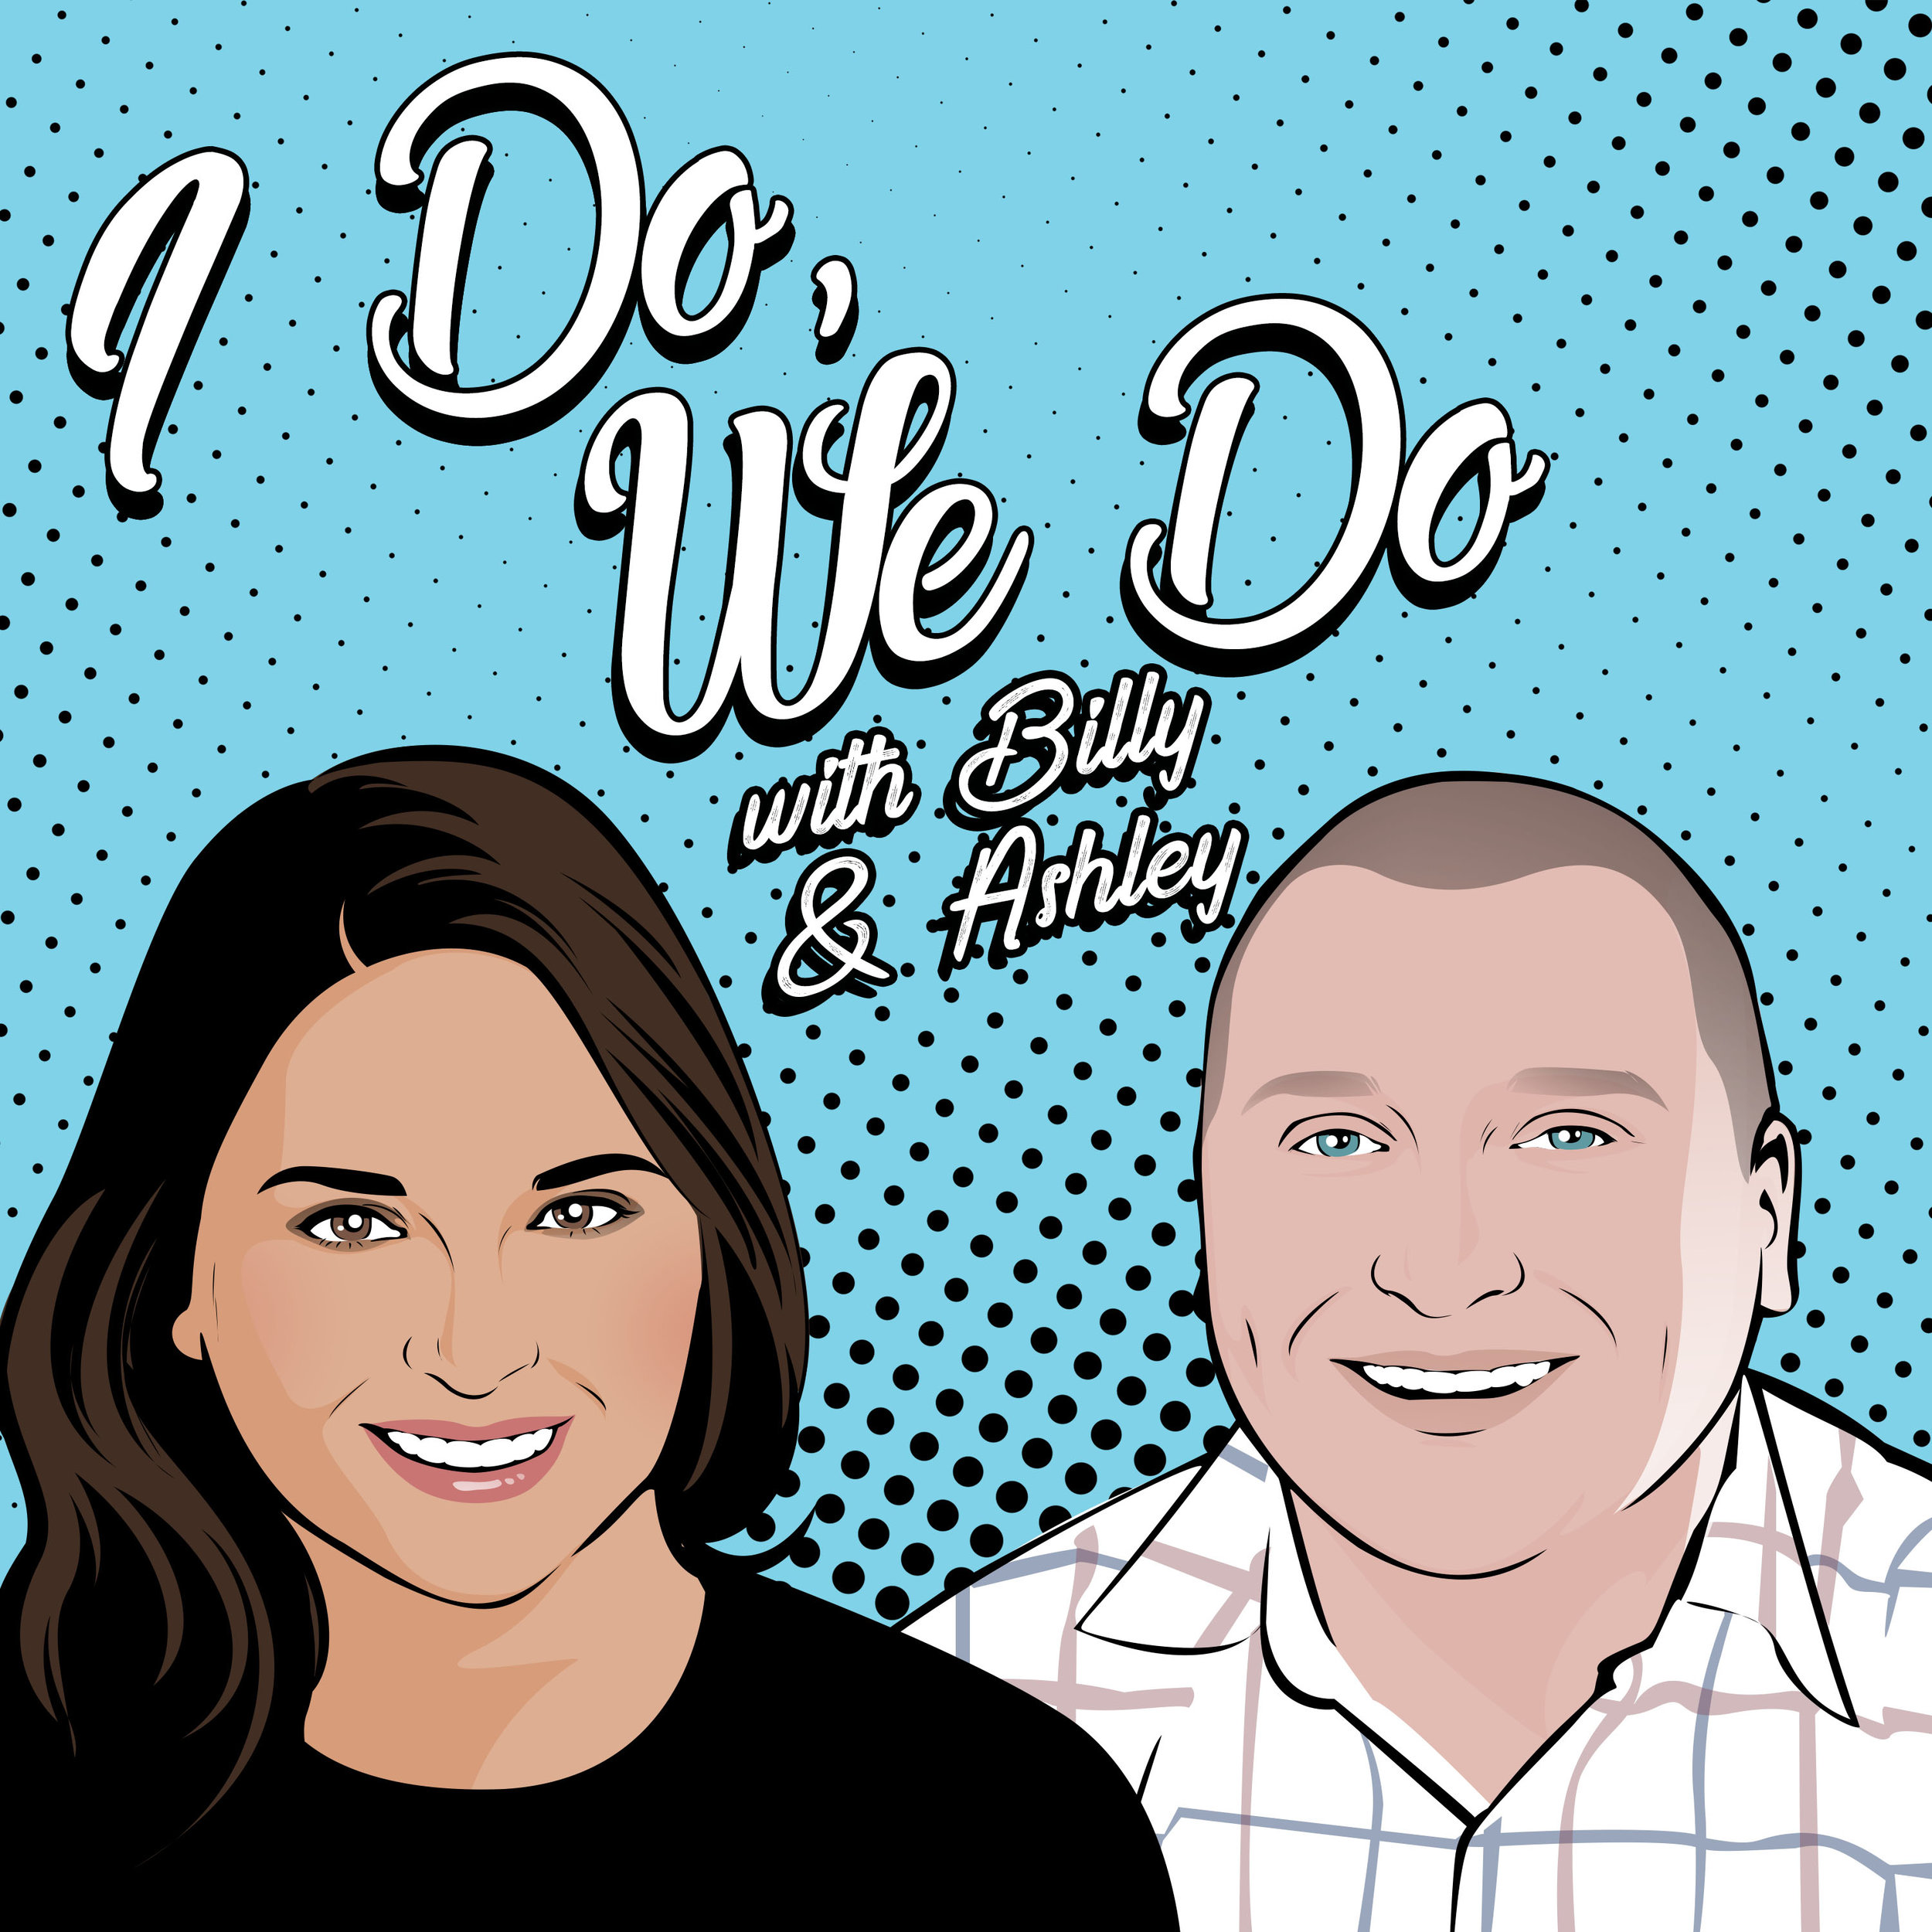 A podcast for collaborators. - The I Do, We Do Podcast was created for collaborators who are ready to up-level their communication & collaboration skills.We're your hosts Billy & Ashley. But you can use the nickname our family gave us — Bashley. We'll use real-life examples and interviews with inspiring duos to help you understand how you and your partner can be better together in business, at home, or in your relationship.